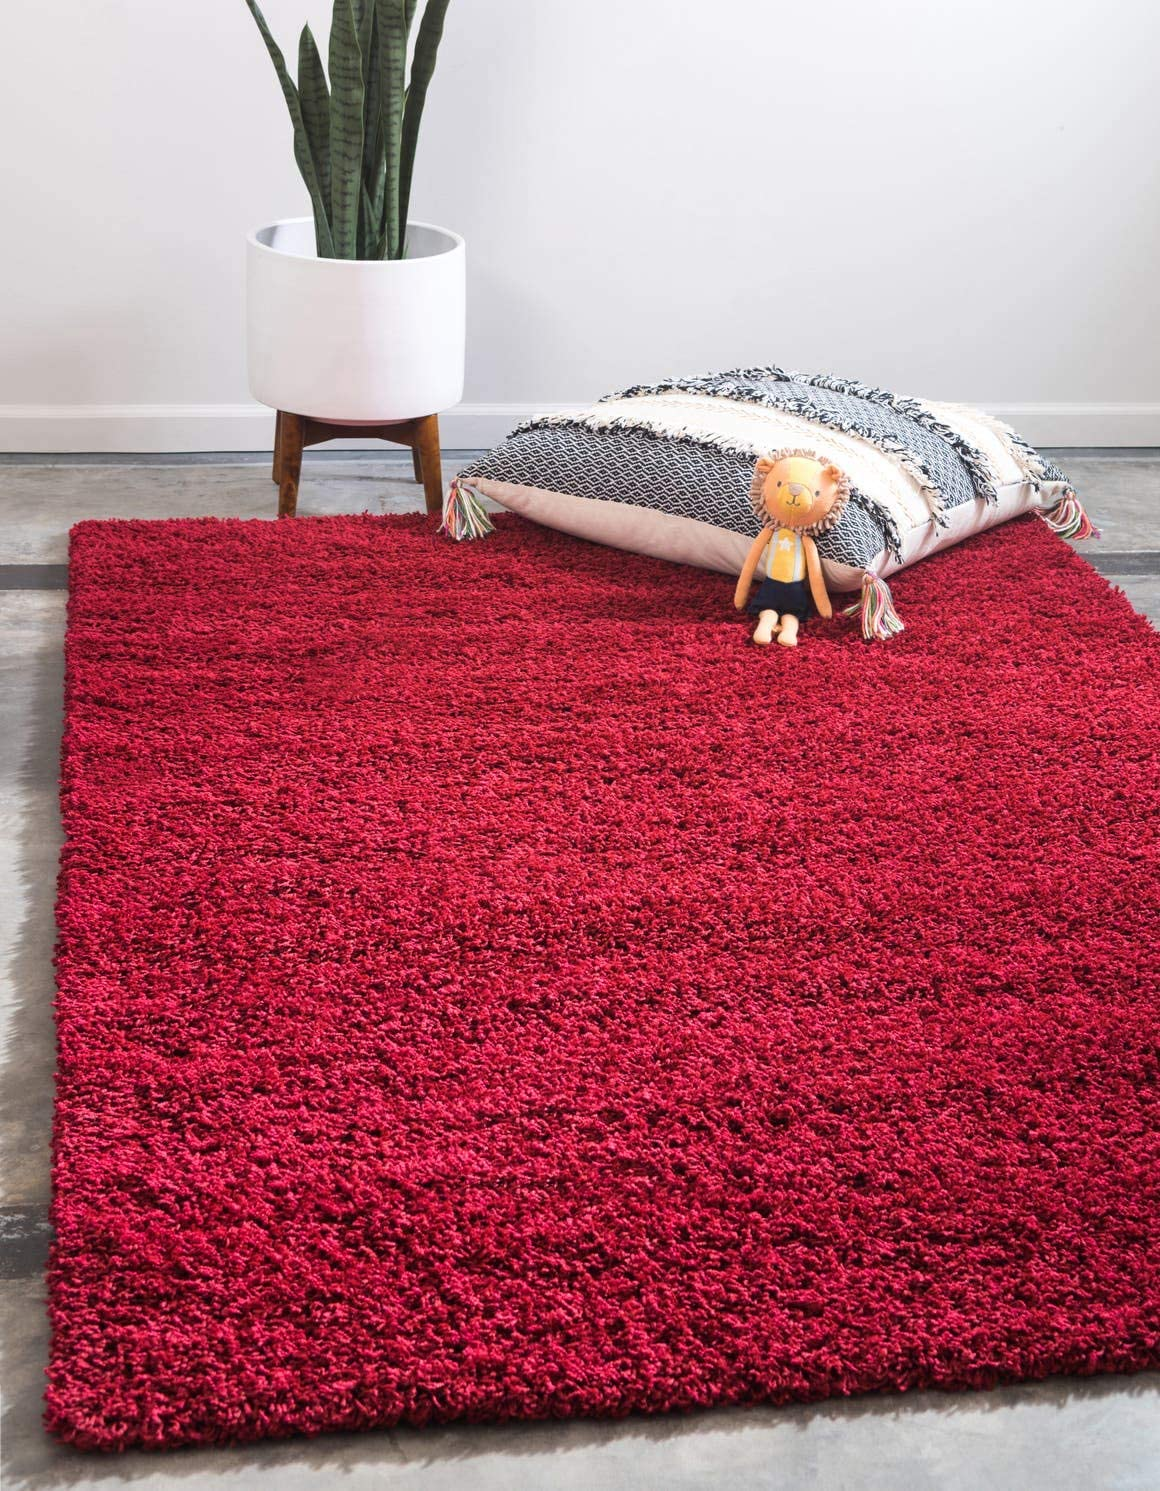 Unique Loom Solo Solid Shag Collection Modern Plush Cherry Red Area Rug 2 2 x 3 0